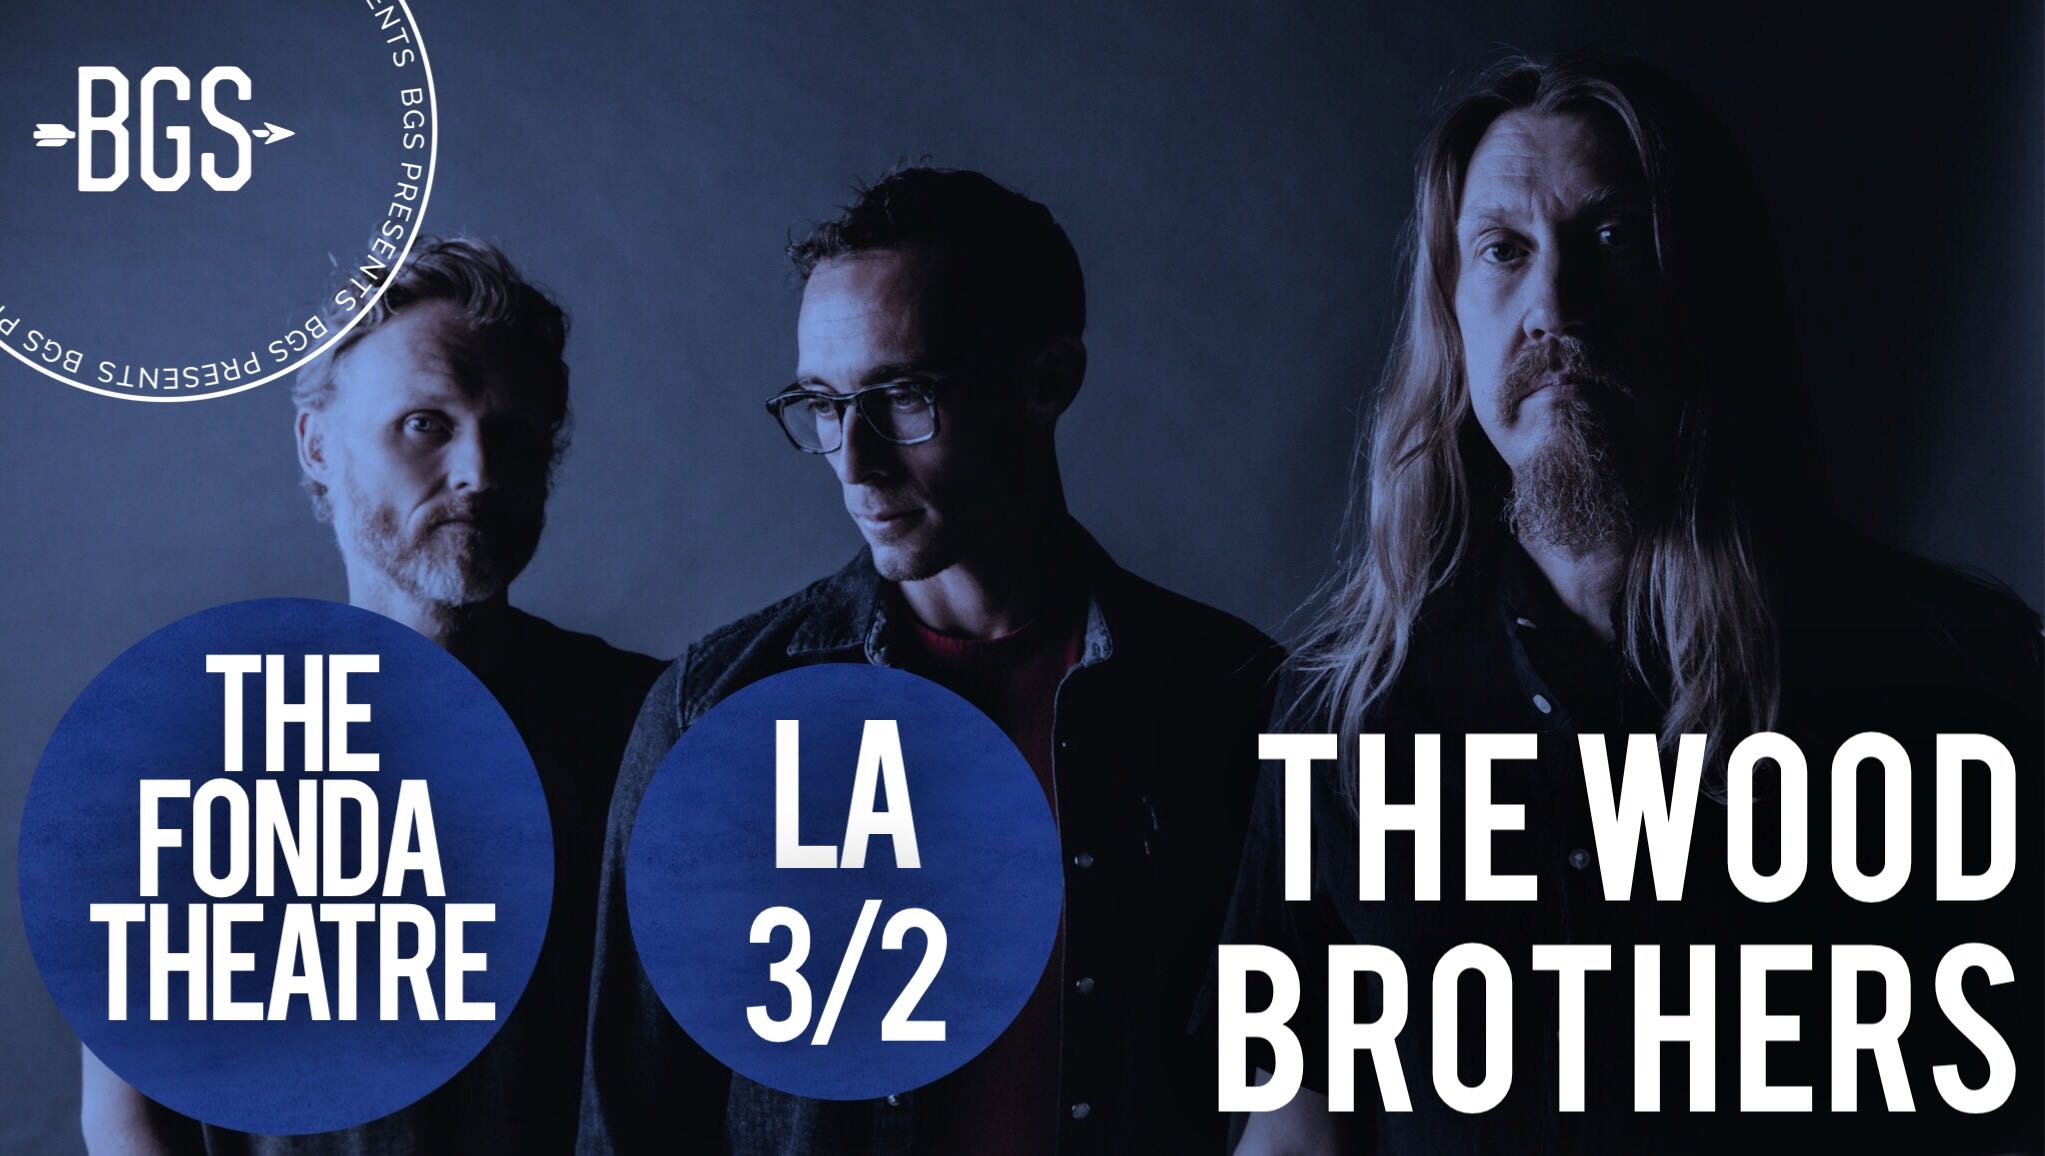 GIVEAWAY: Win tickets to see the Wood Brothers @ the Fonda Theatre (LA) 3/2